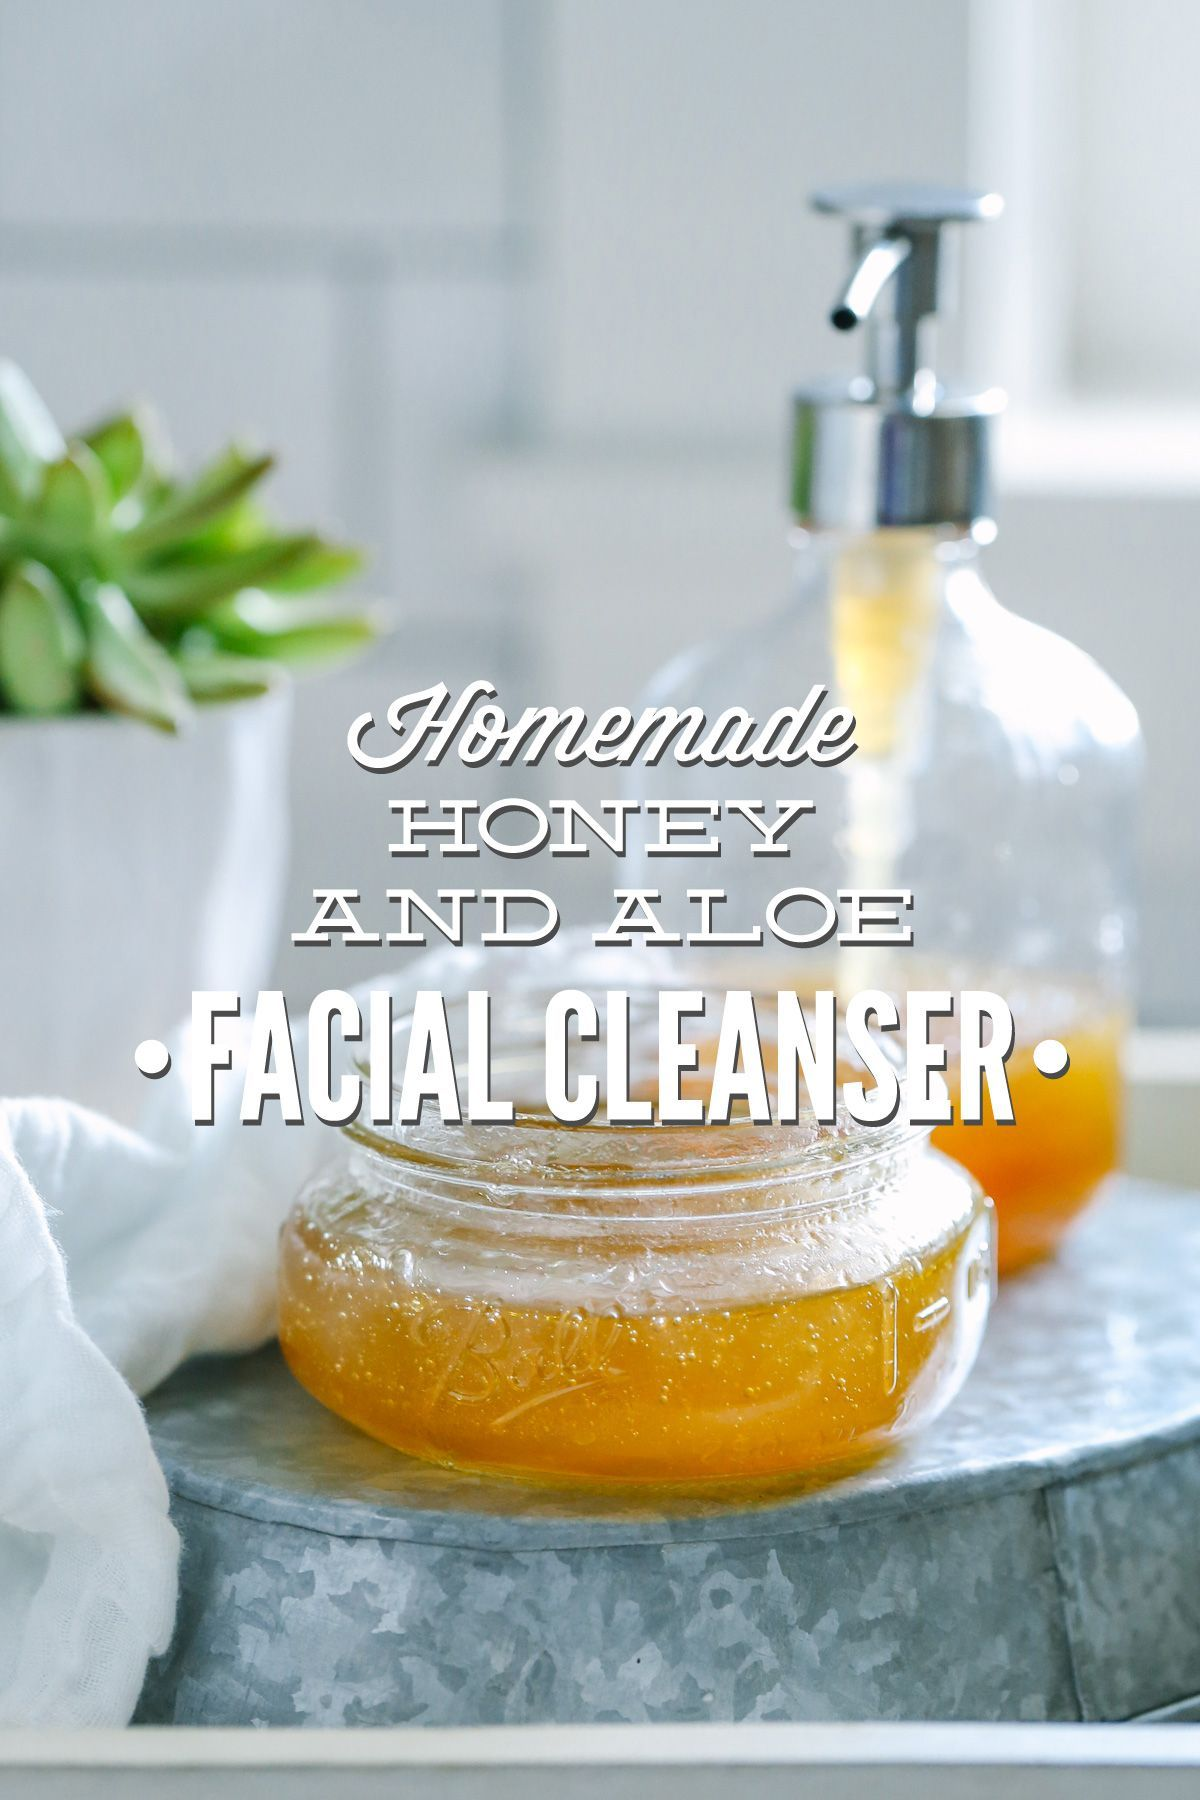 Homemade Honey Face Wash **  I used 1 teaspoon avocado oil (you can also substitute jojoba or rosehip oil).  Add 2-3 drops essential oil for your skin type.**  I used 1 teaspoon avocado oil (you can also substitute jojoba or rosehip oil).  Add 2-3 drops essential oil for your skin type.